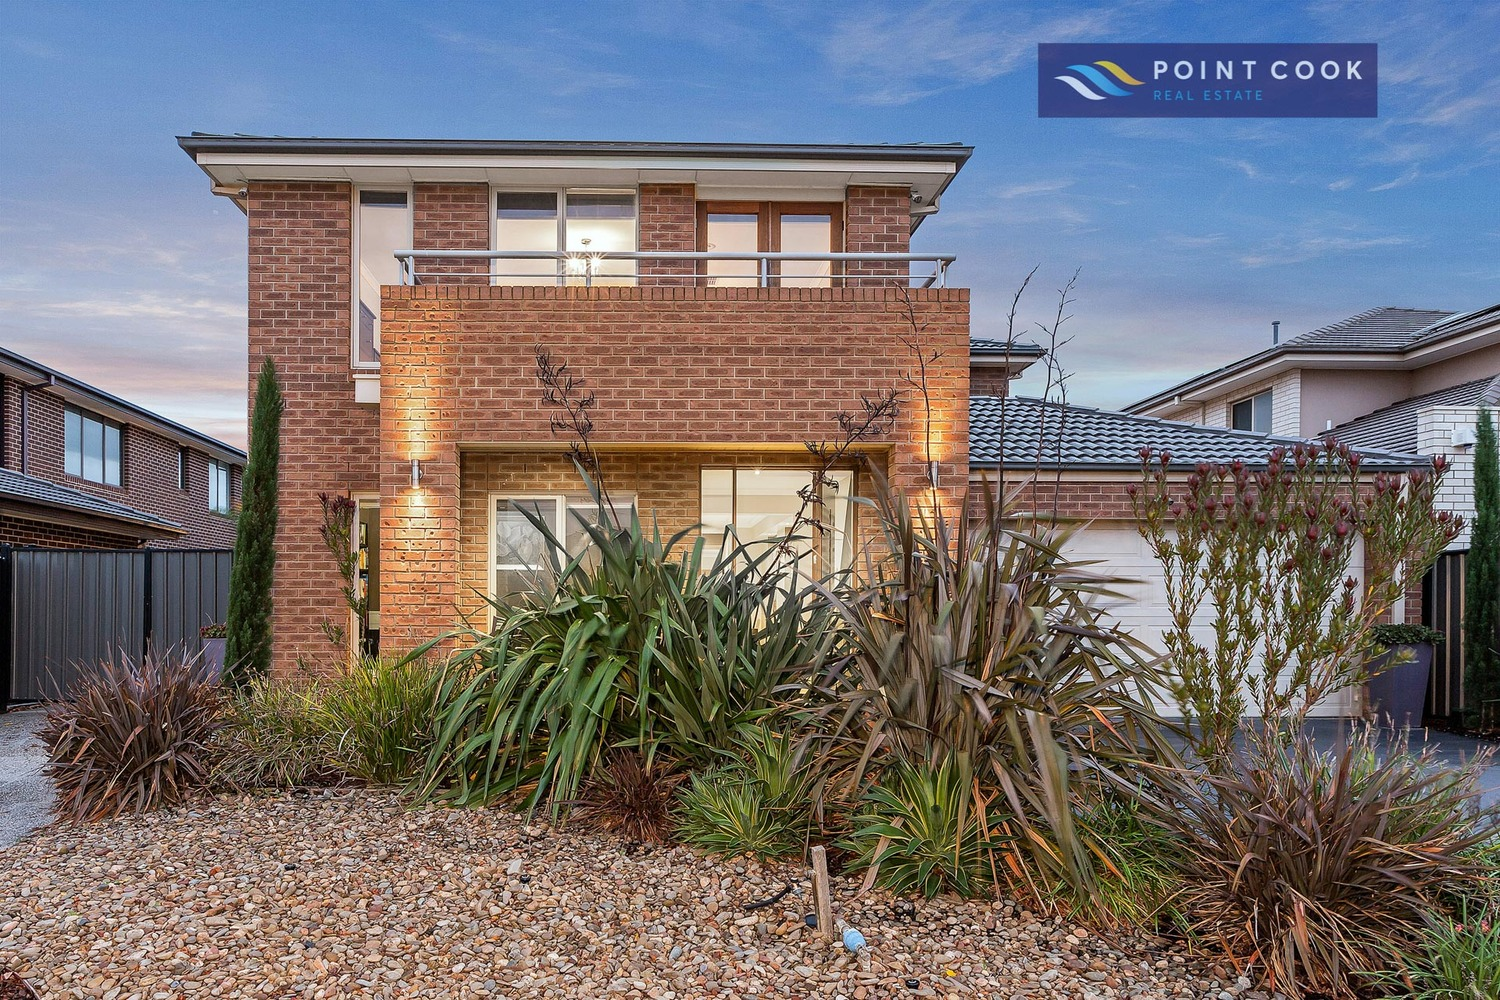 52 Villiers Drive, Point Cook